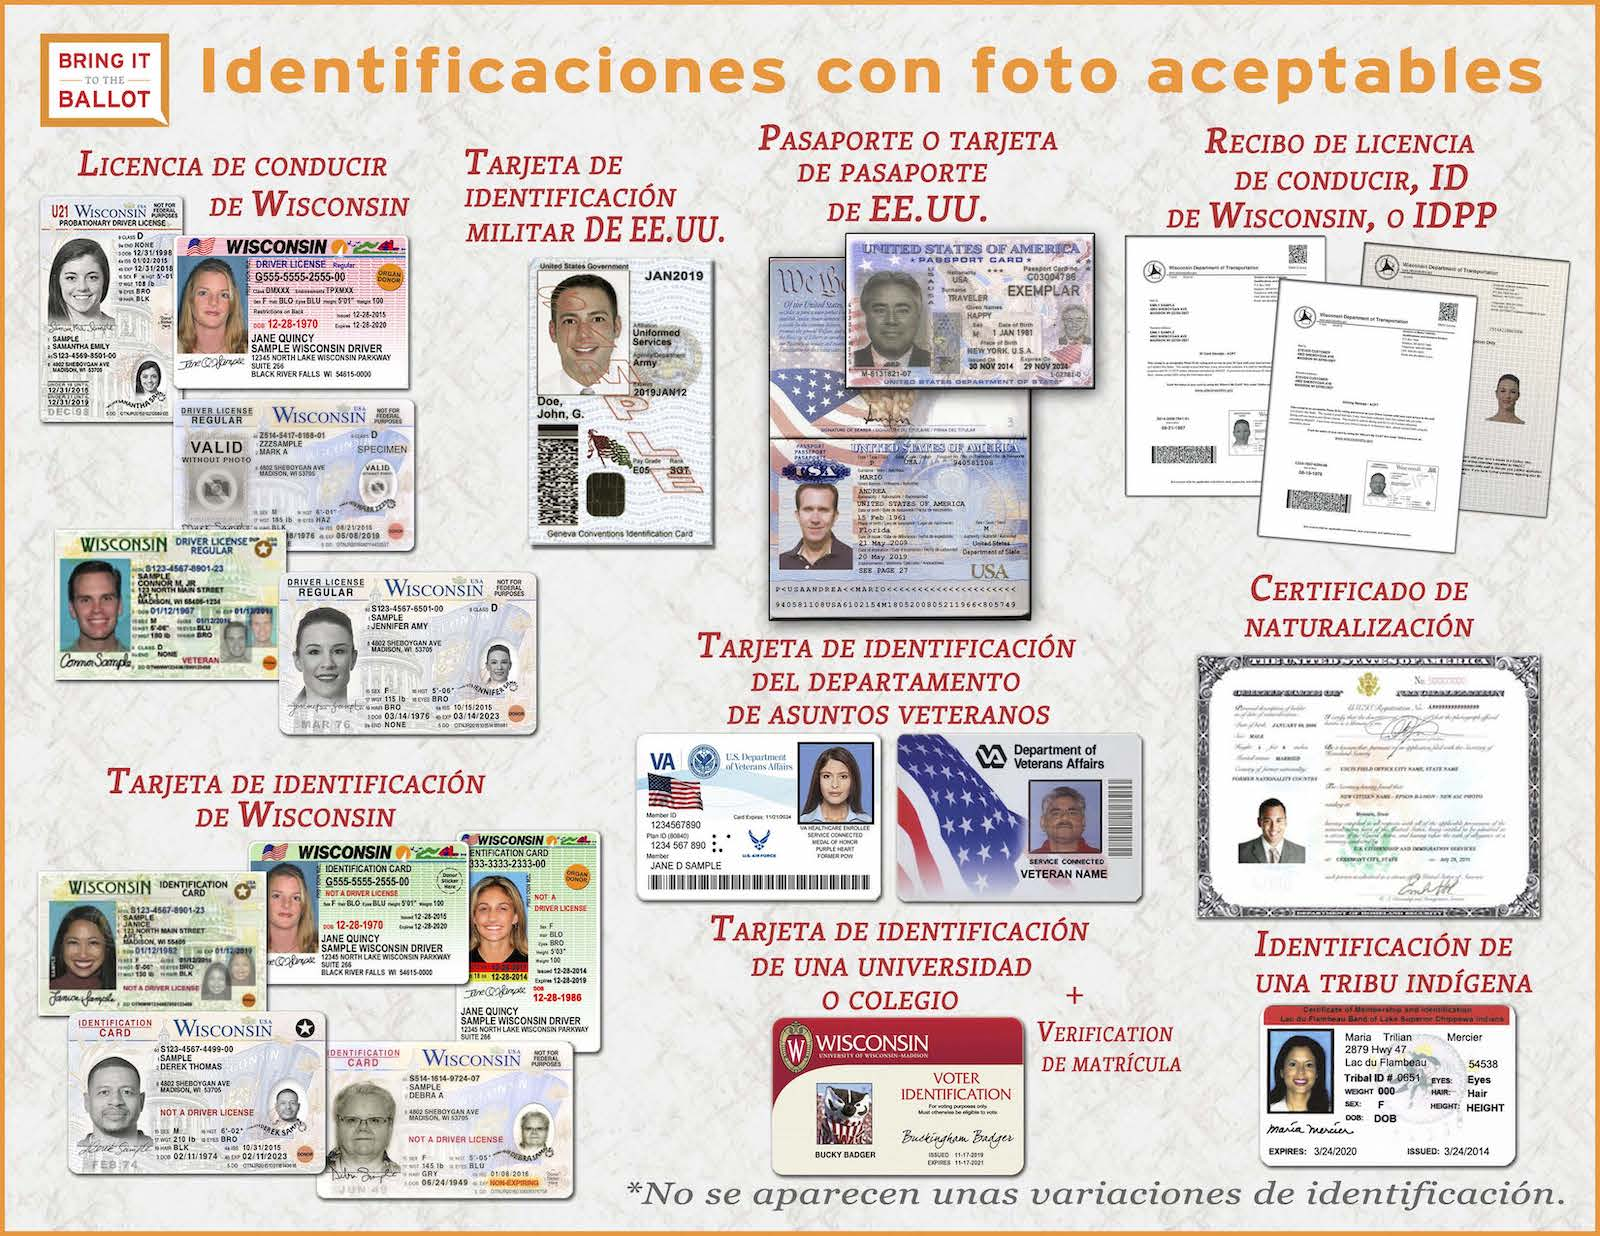 Acceptable-Photo-IDs 2019-BITB-Spanish.jpg